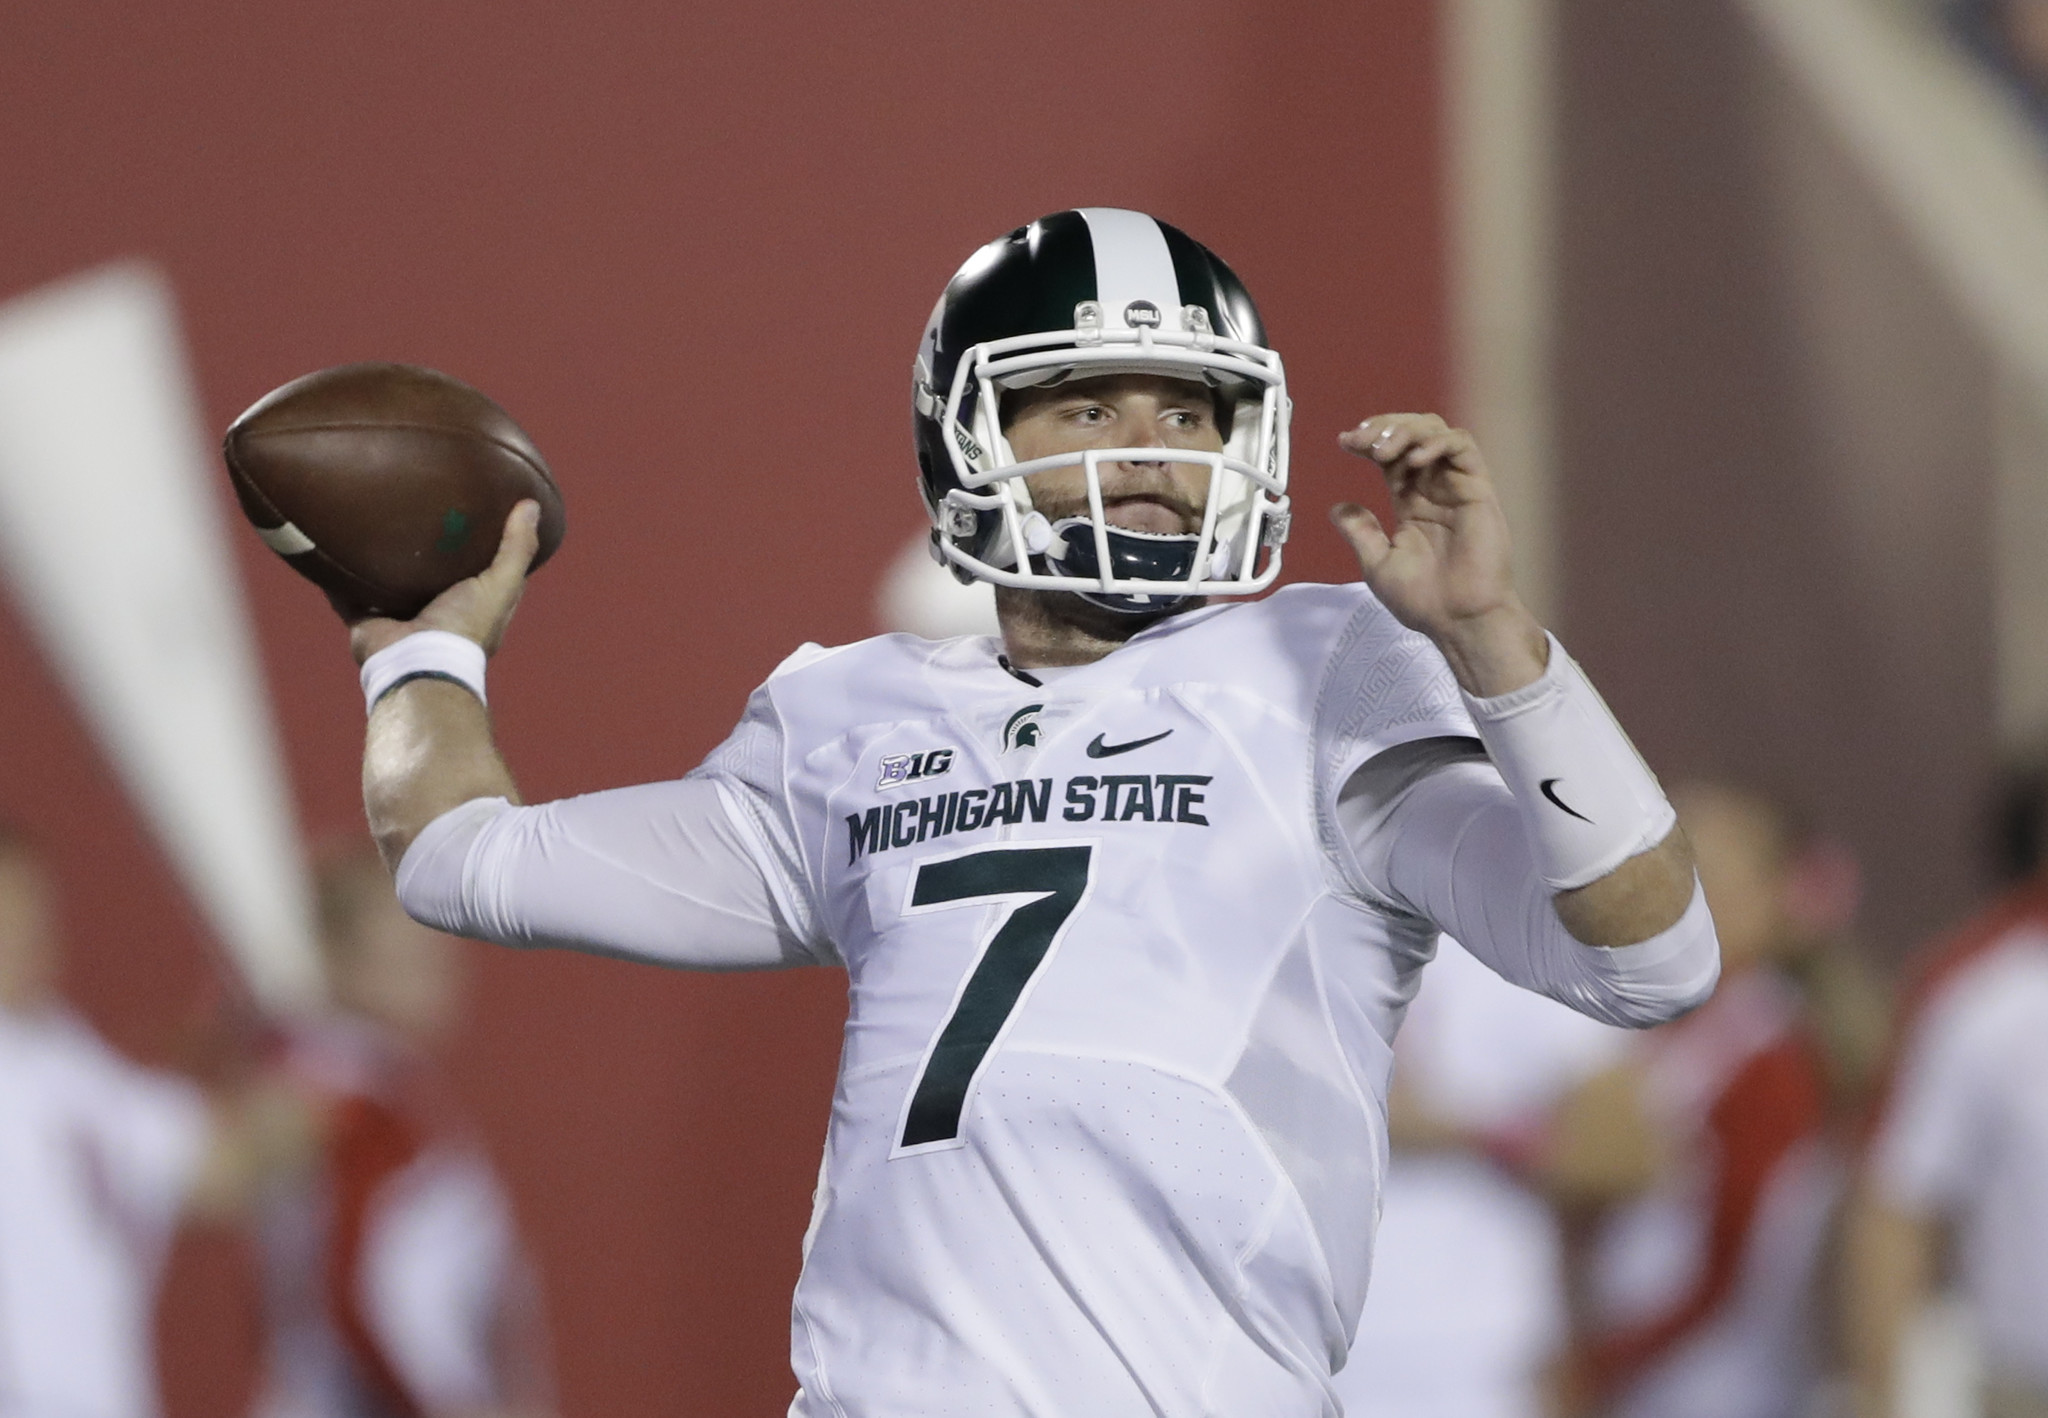 Ct-northwestern-michigan-state-preview-spt-1015-20161014